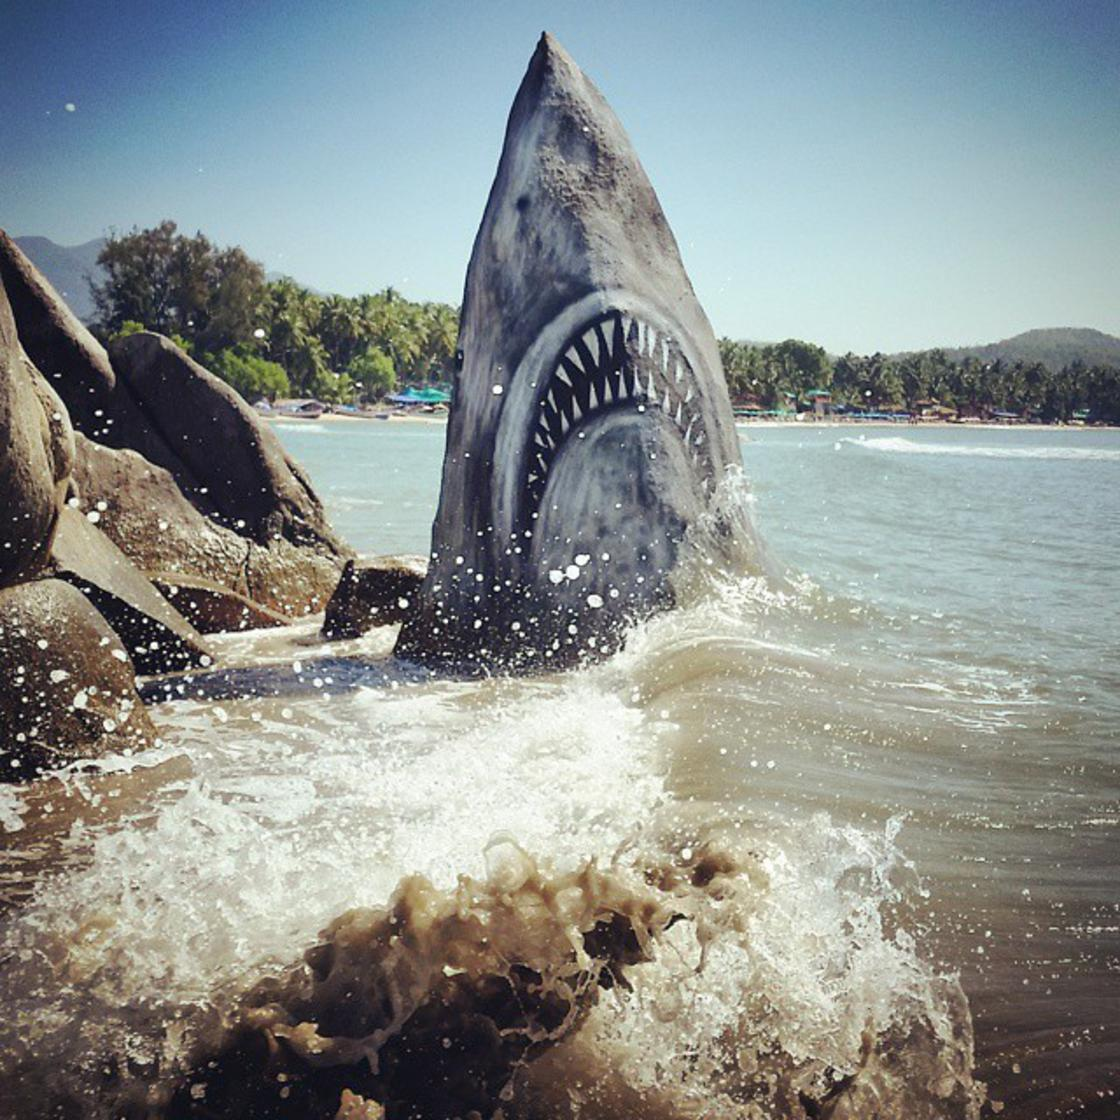 Jaws – This artist turns a simple rock into a fierce shark